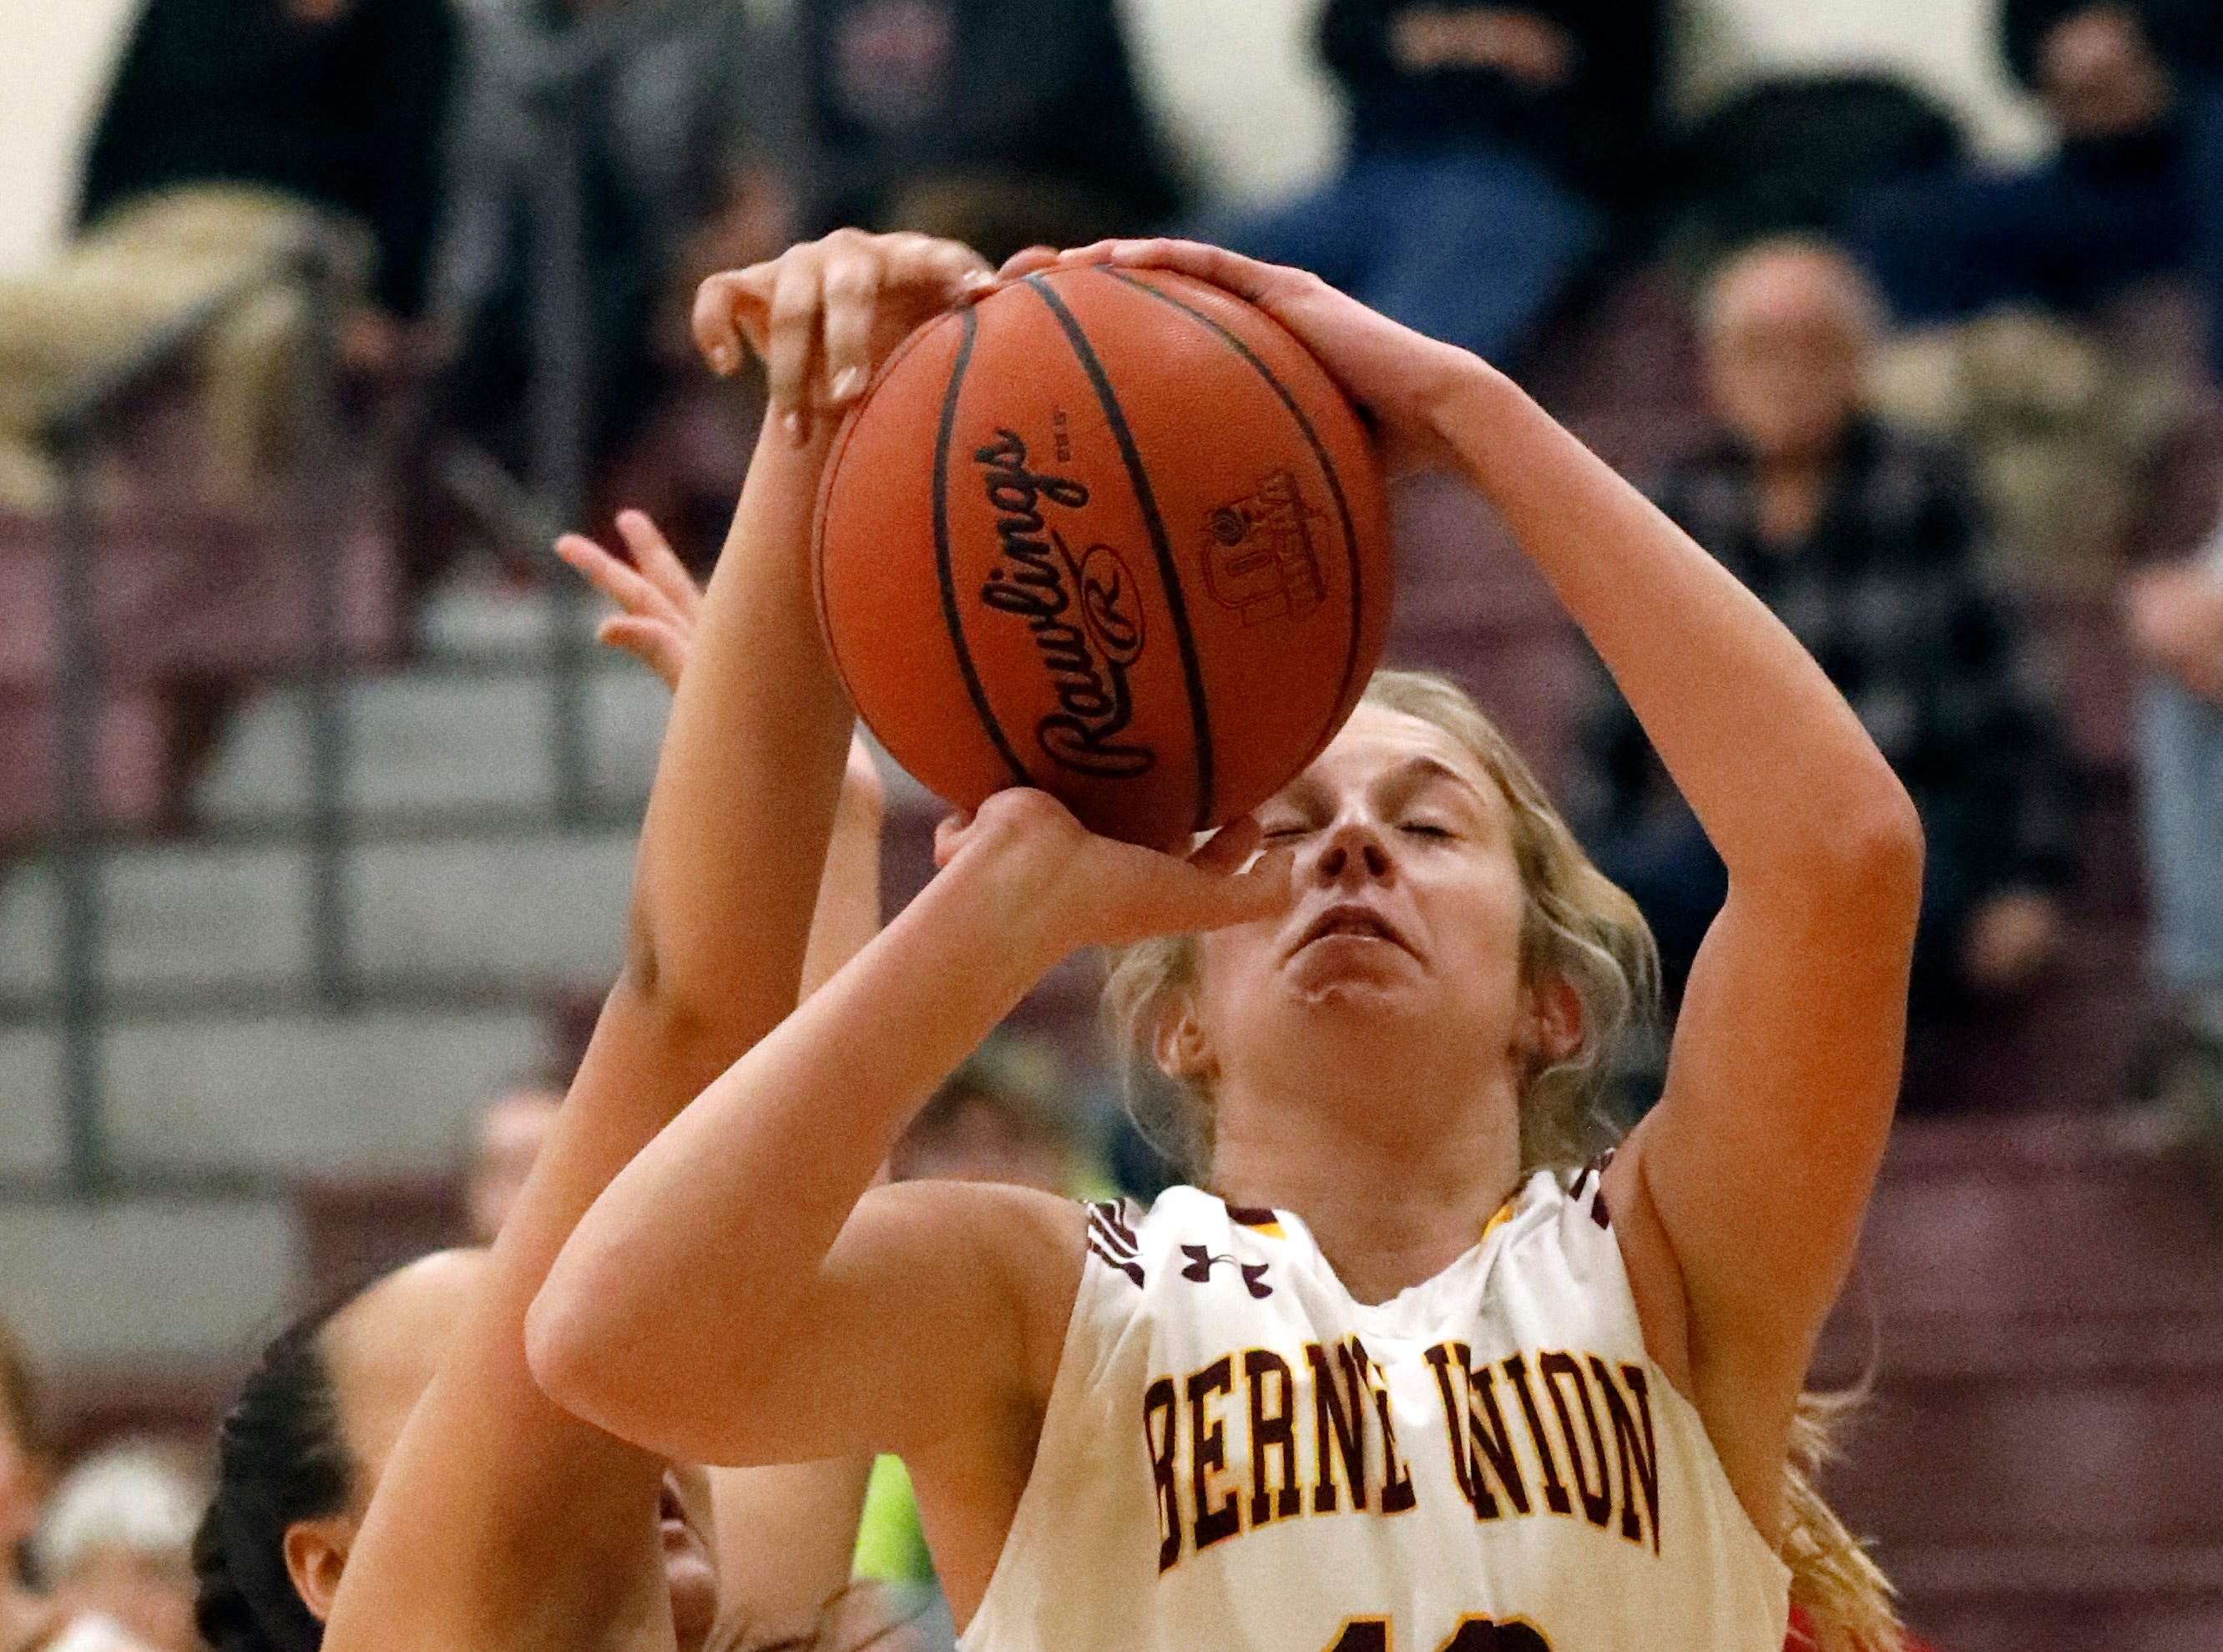 Fairfield Christian's Janae Grabans blocks the shot of Berne Union's Lauren Nemeth during Tuesday night's game, Jan. 29, 2019, at Berne Union High School in Sugar Grove. The Knights won the game 84-37.